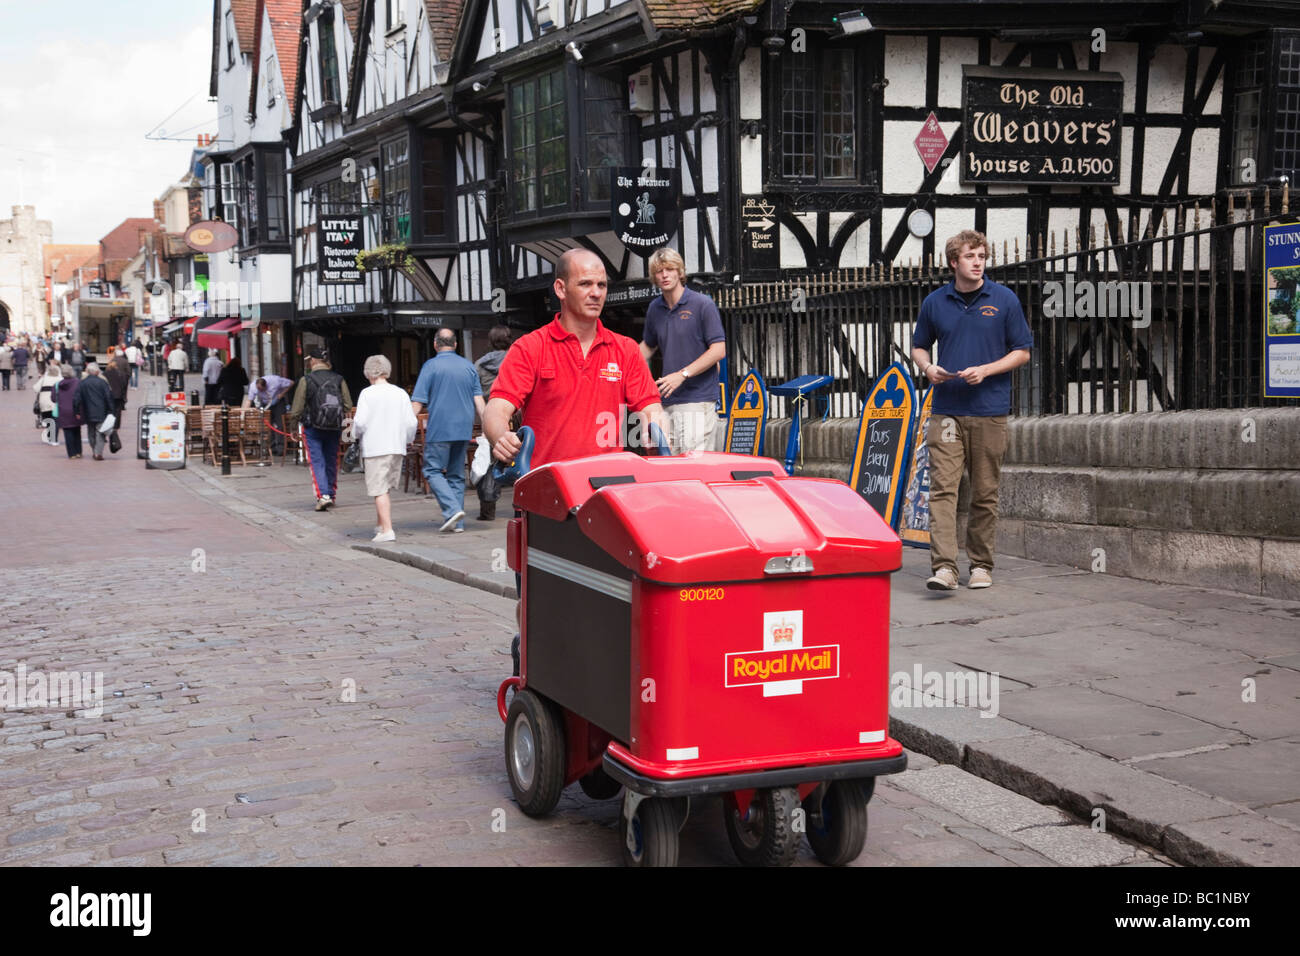 England UK Europe Postman pushing Royal Mail post trolley in city - Stock Image